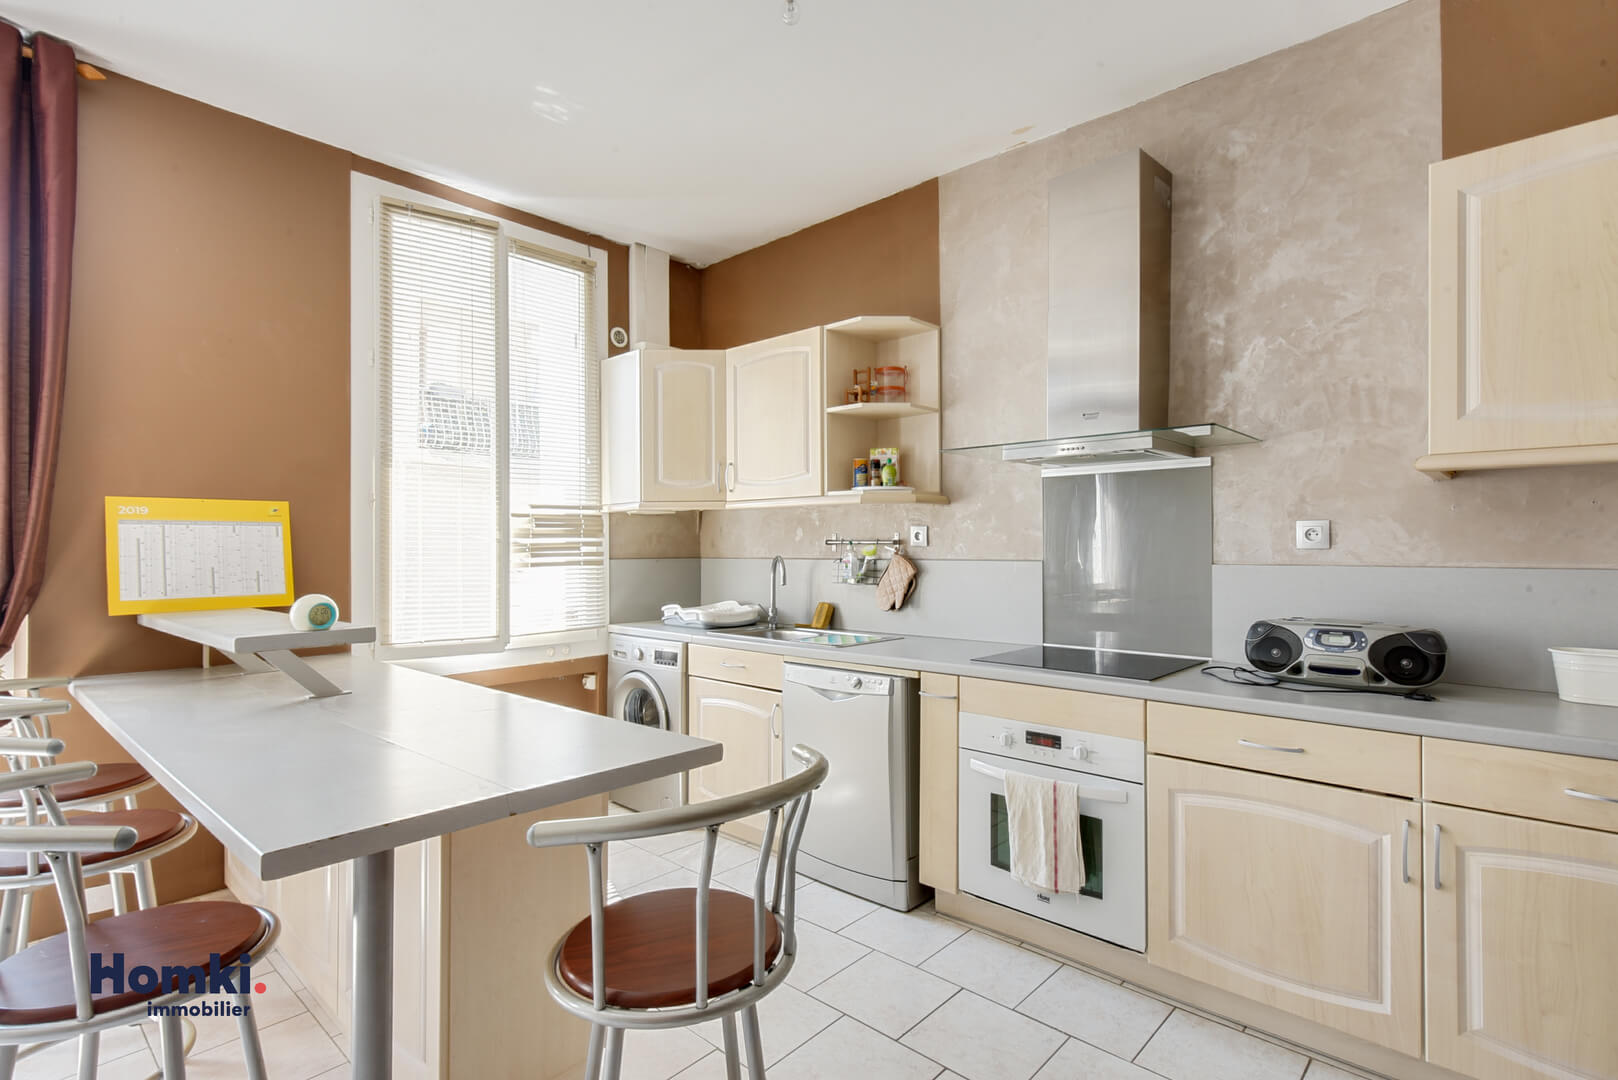 Vente Appartement 76 m² T4 13005 Marseille_3